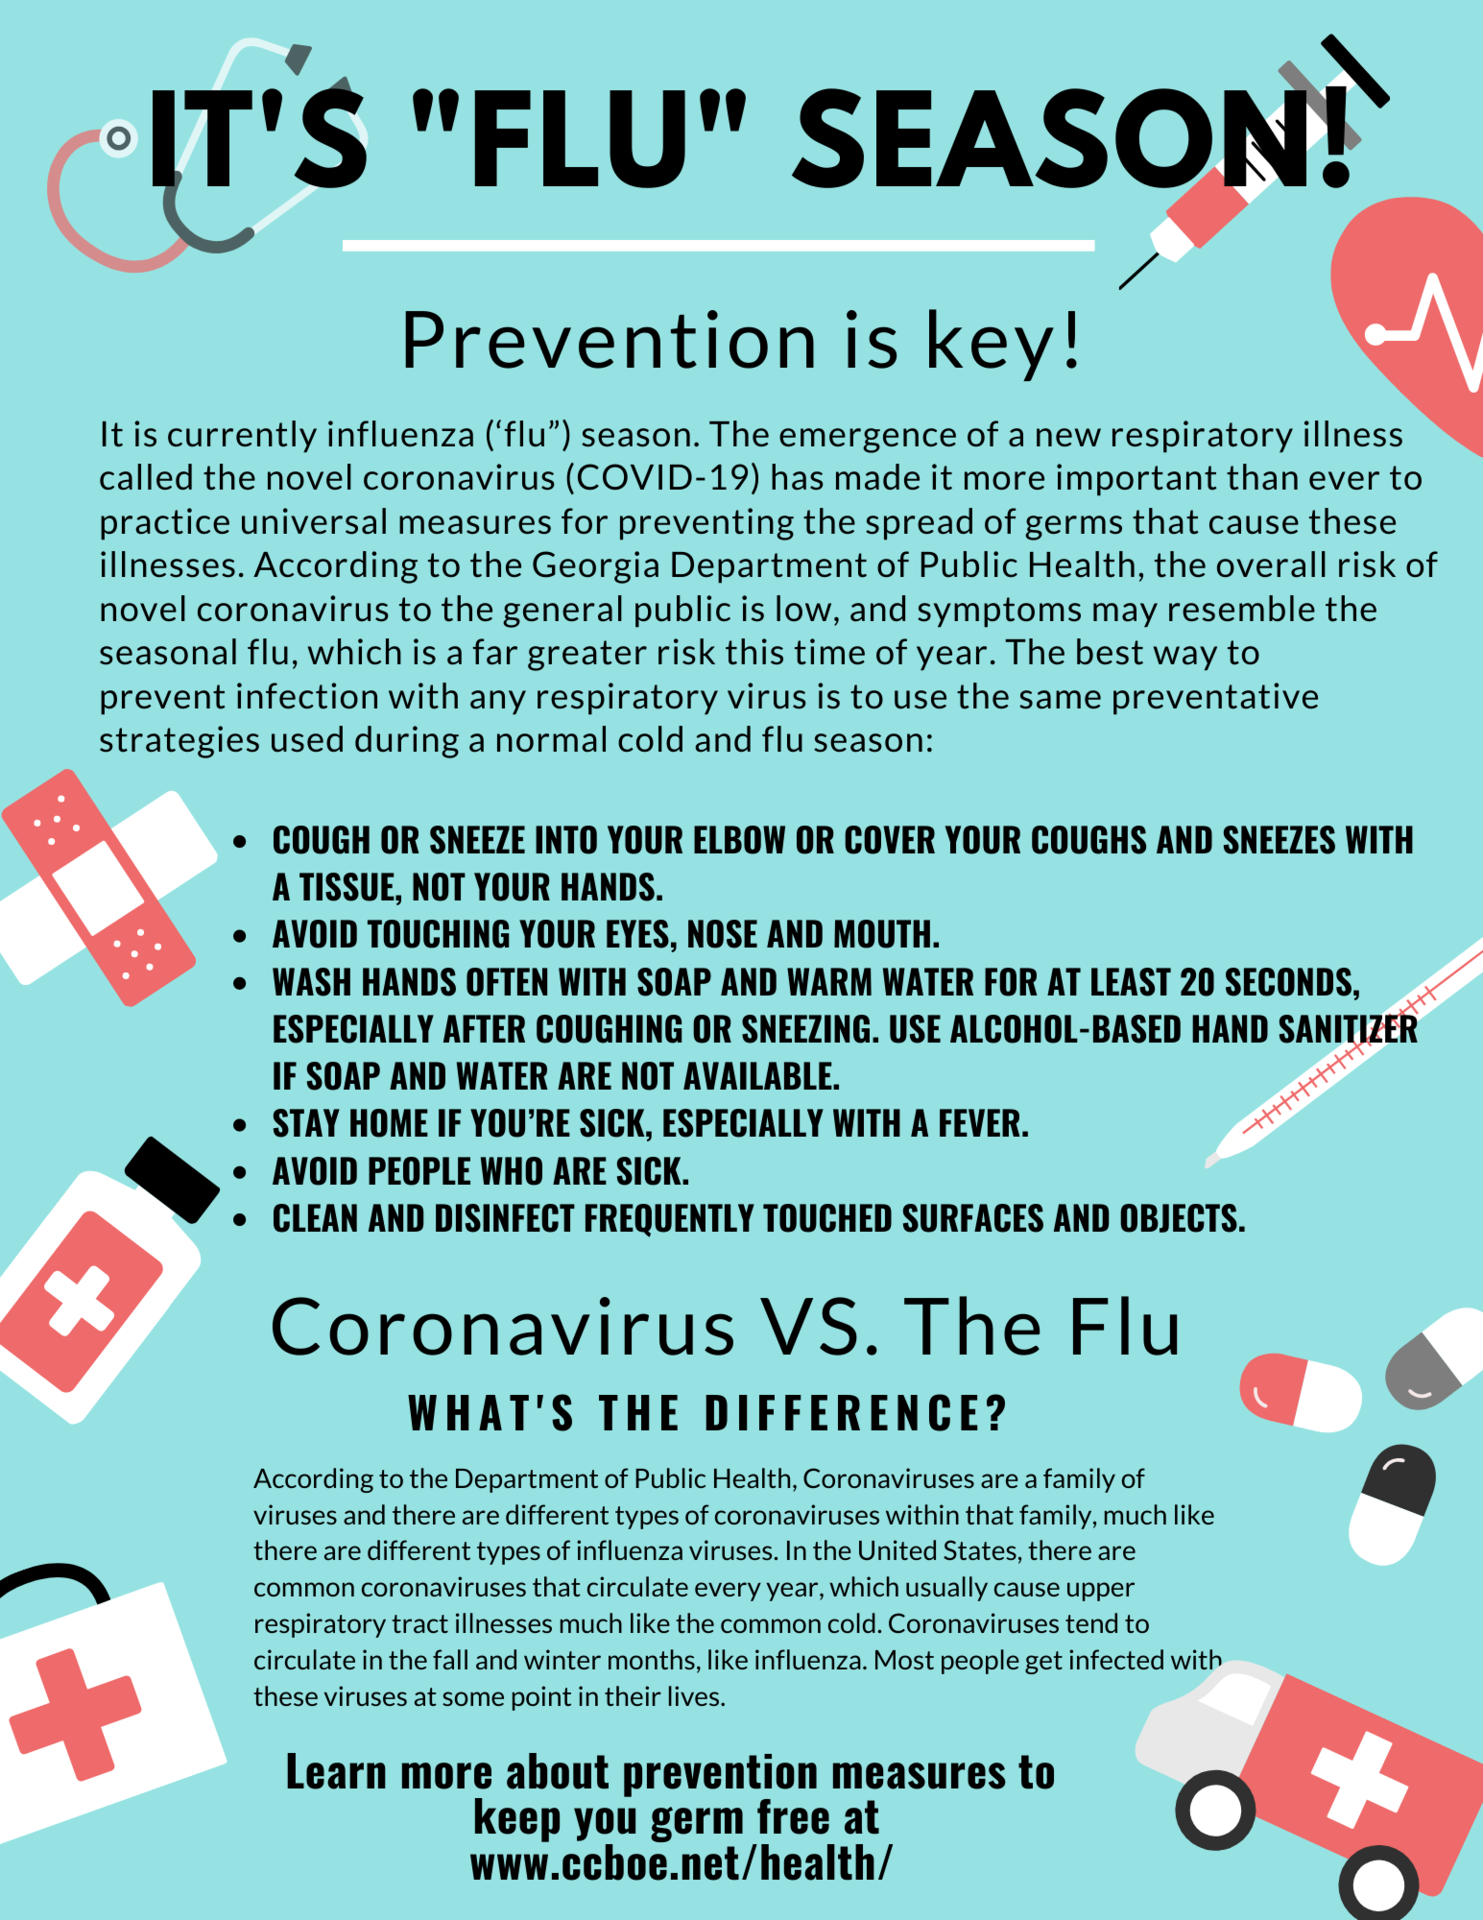 Flu prevention information